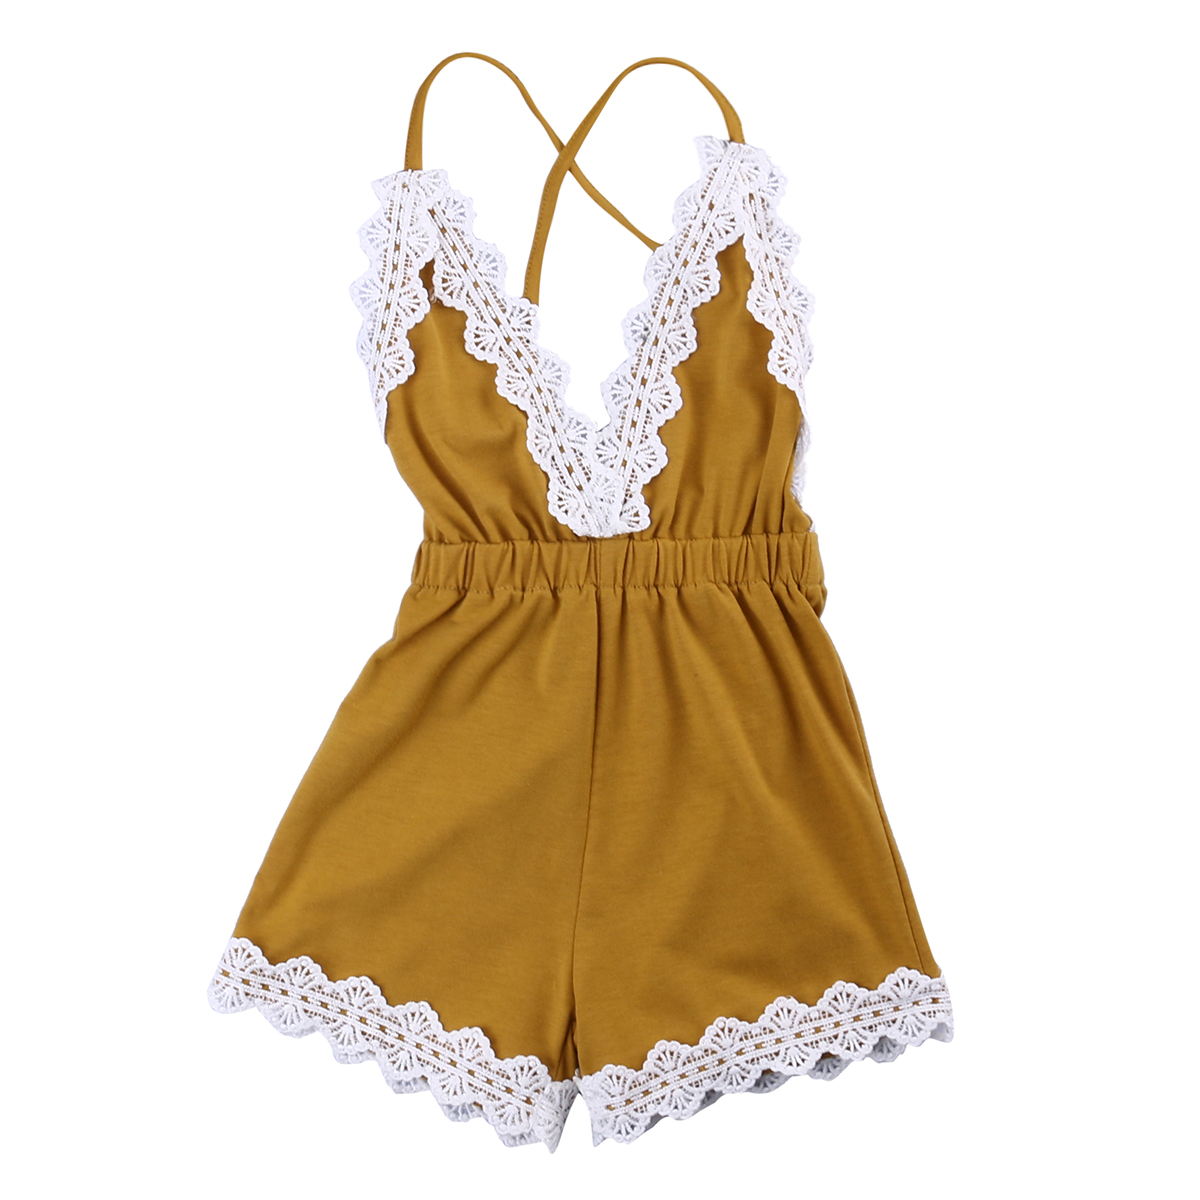 43d12977930e 2018 New Brand Sleeveless Seller Newborn Baby Girls Lace Strap Romper  Jumpsuit Sunsuit Outfit Clothes 0 -24 M